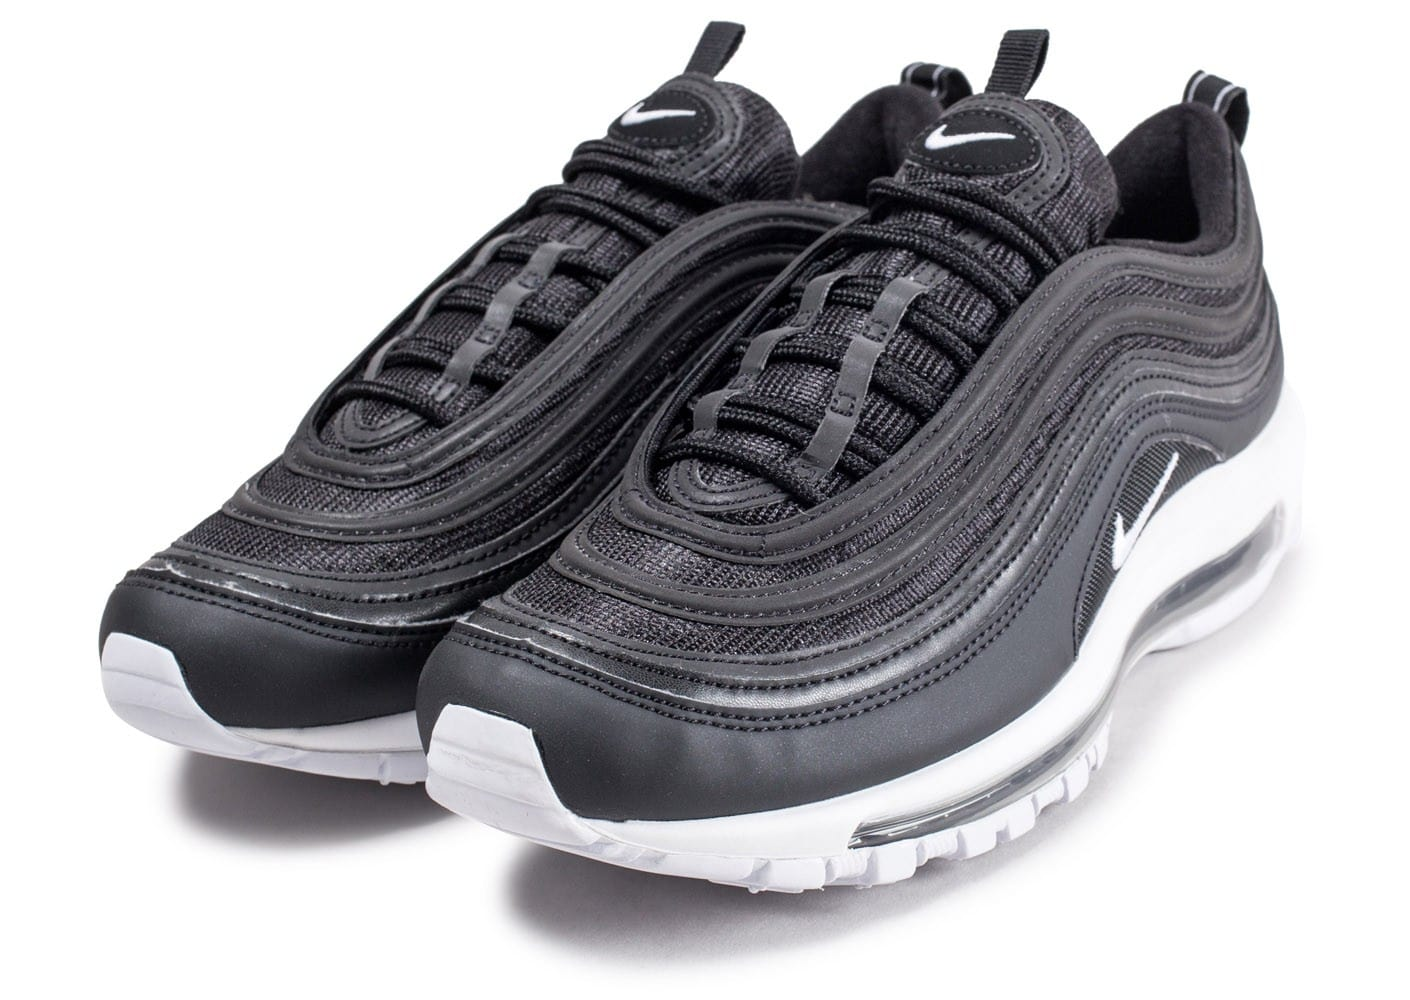 Nike Air Max 97 noire et blanche Chaussures Baskets homme